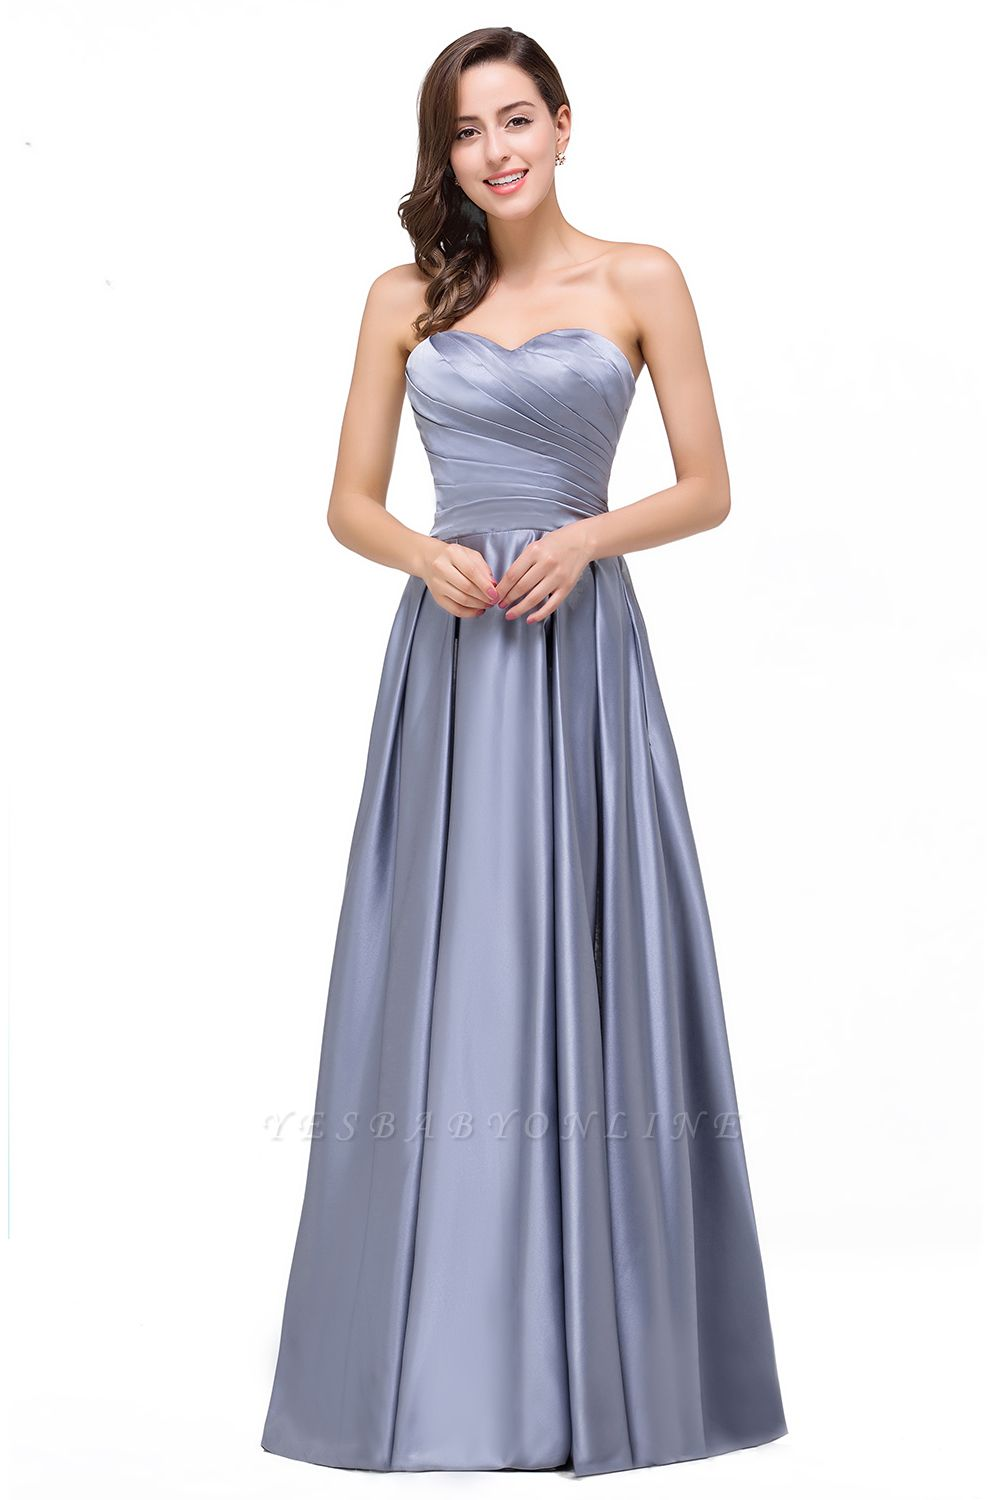 Elegant Long A line Strapless Prom Gown Evening Dress In Stock